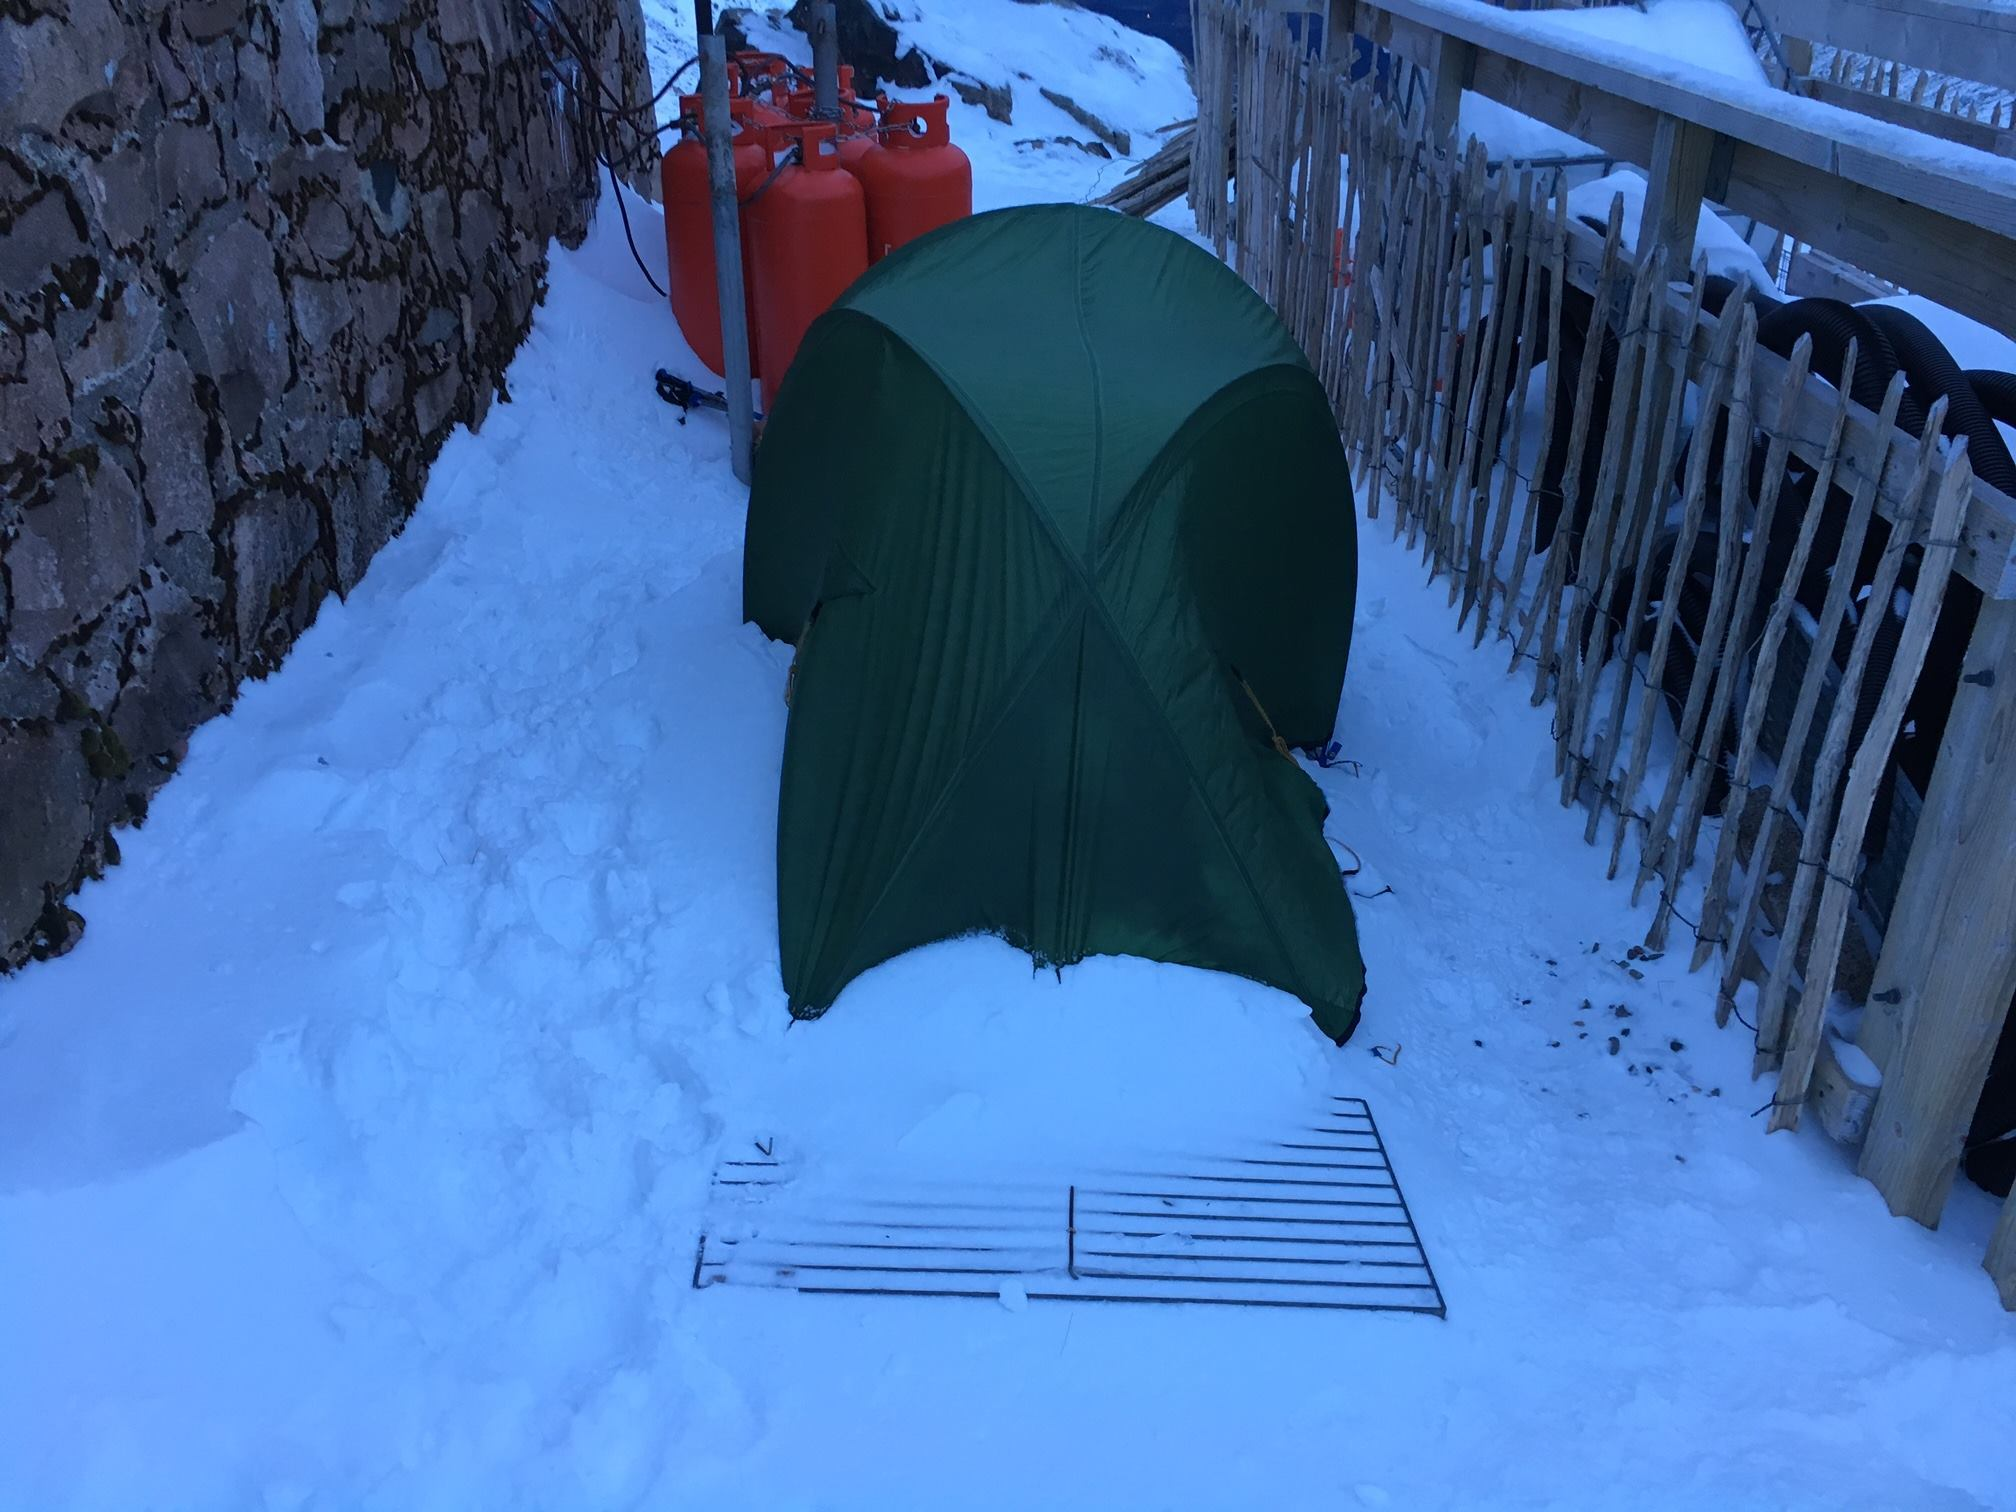 The couple's tent was found on Ben Nevis